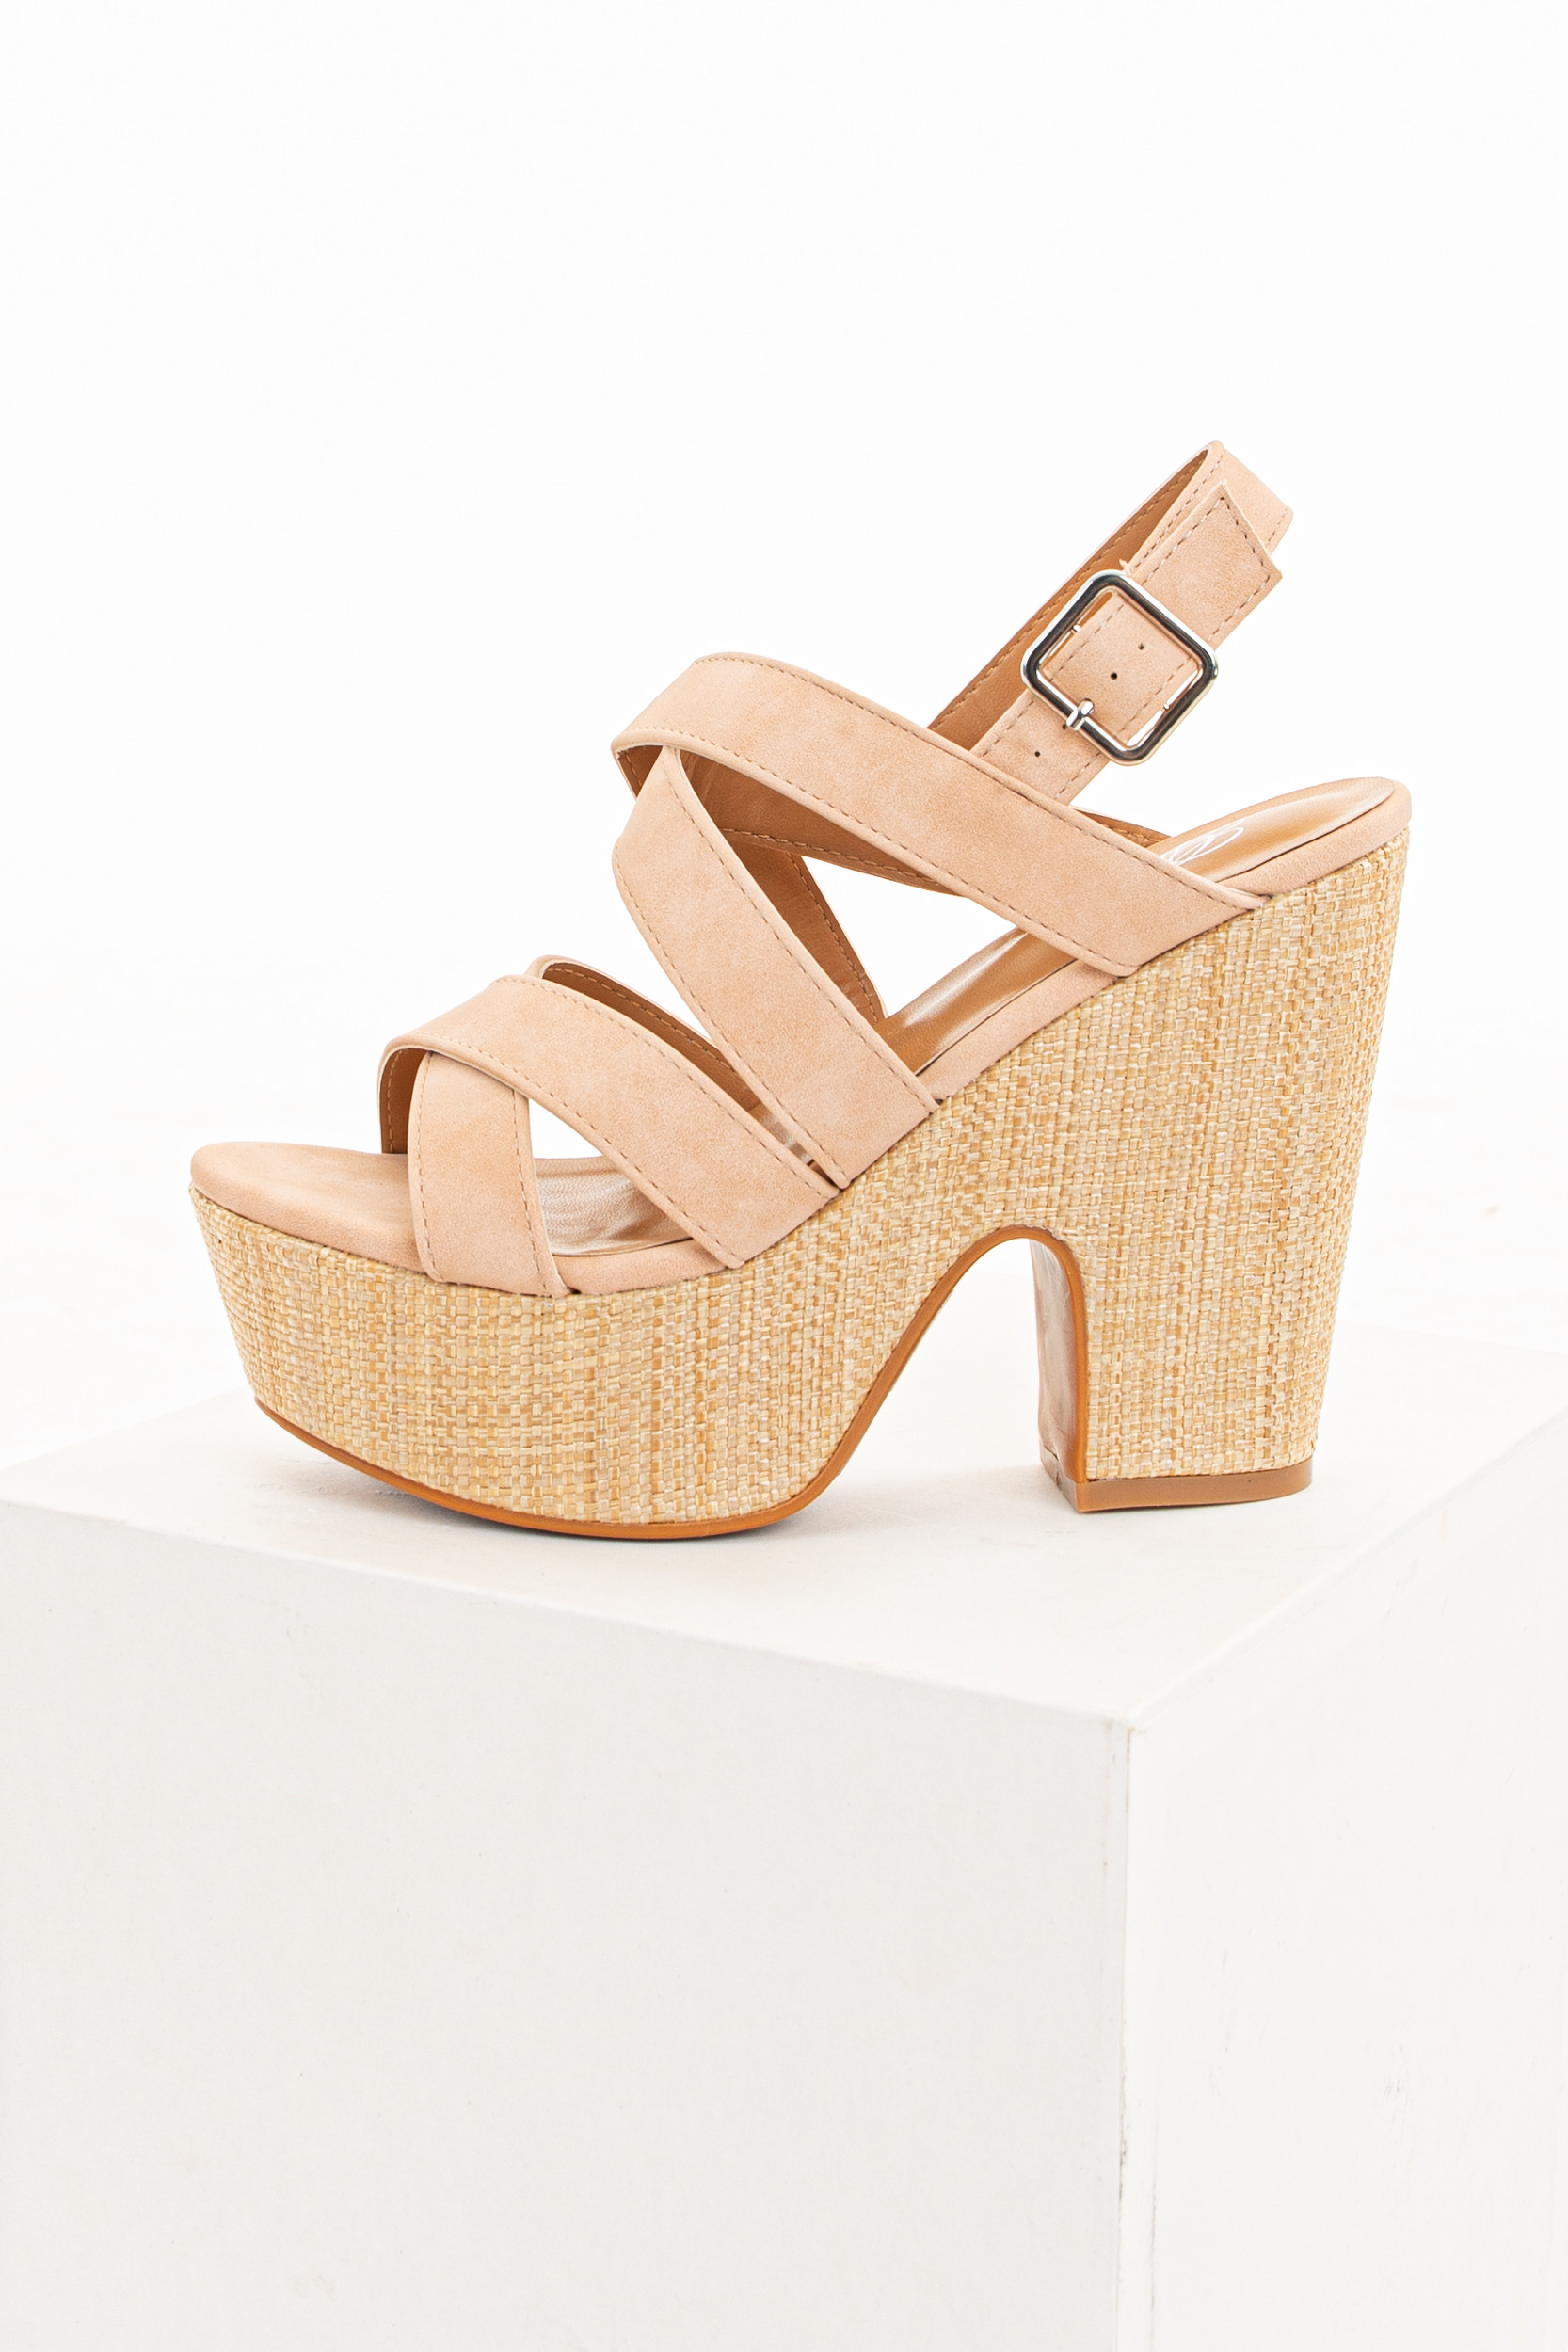 Dusty Blush Strappy Heeled Sandals with Wicker Detail